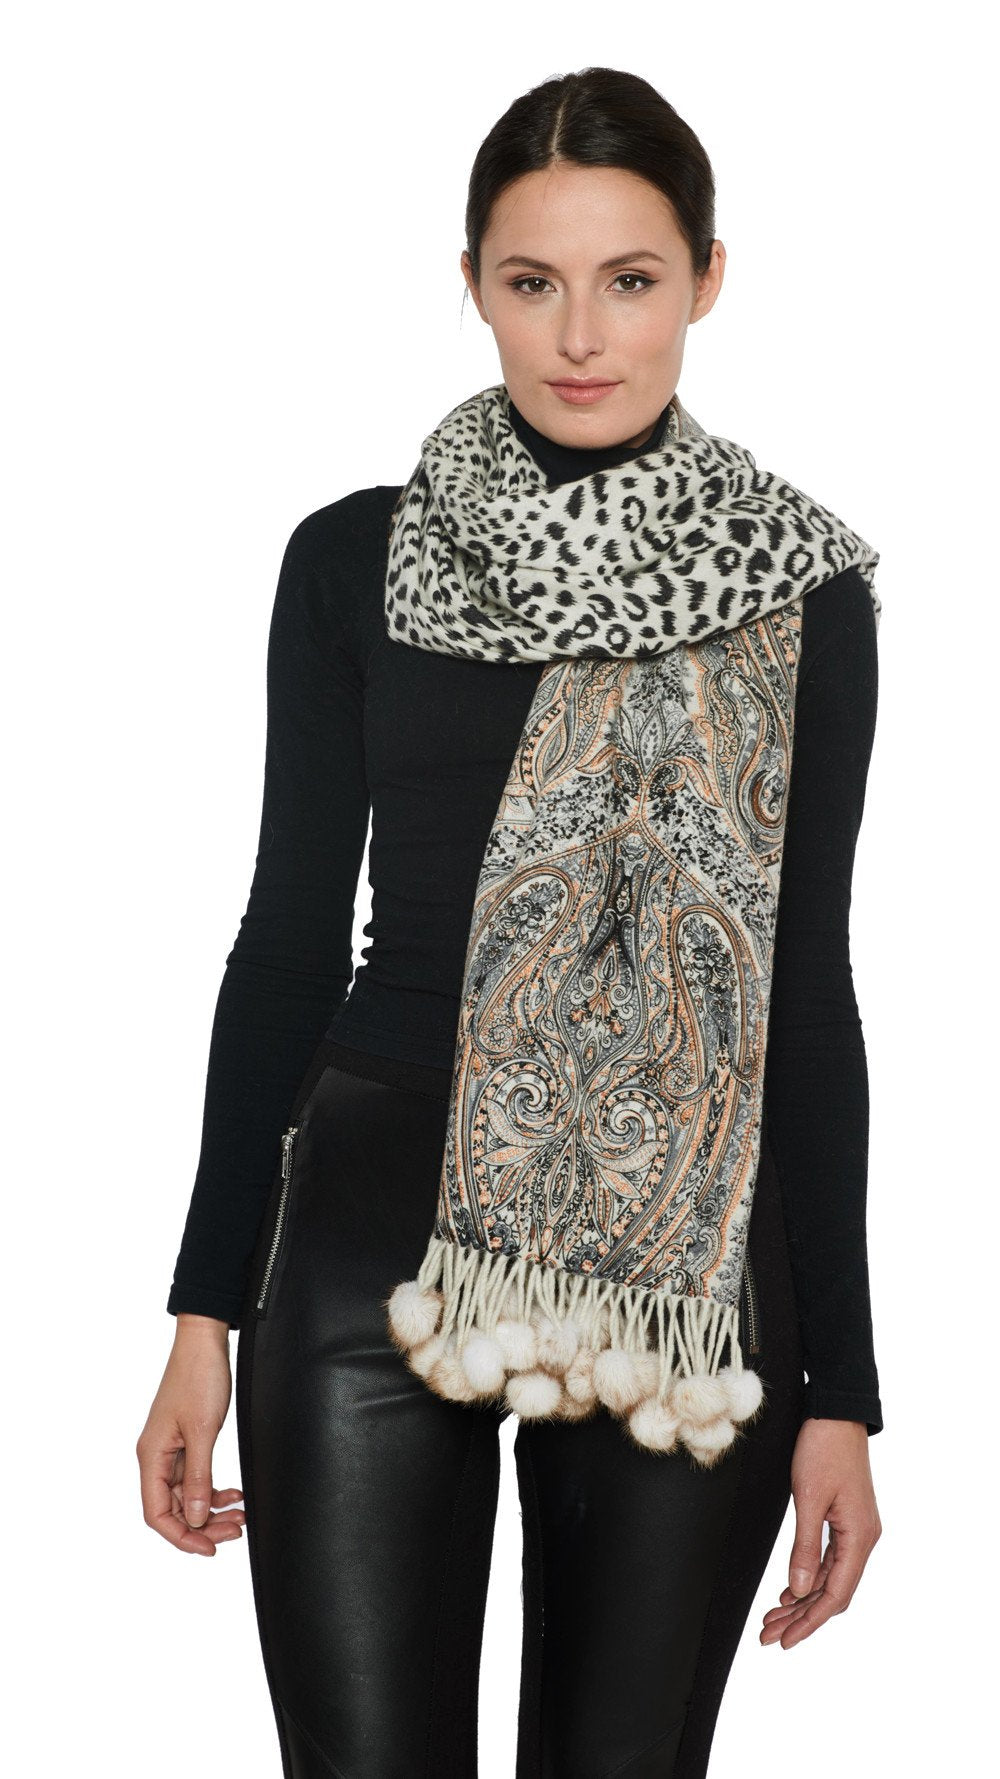 THE RYE Cashmere Reversible Paisley Wrap with Mink Fur Poms - paulamariecollection